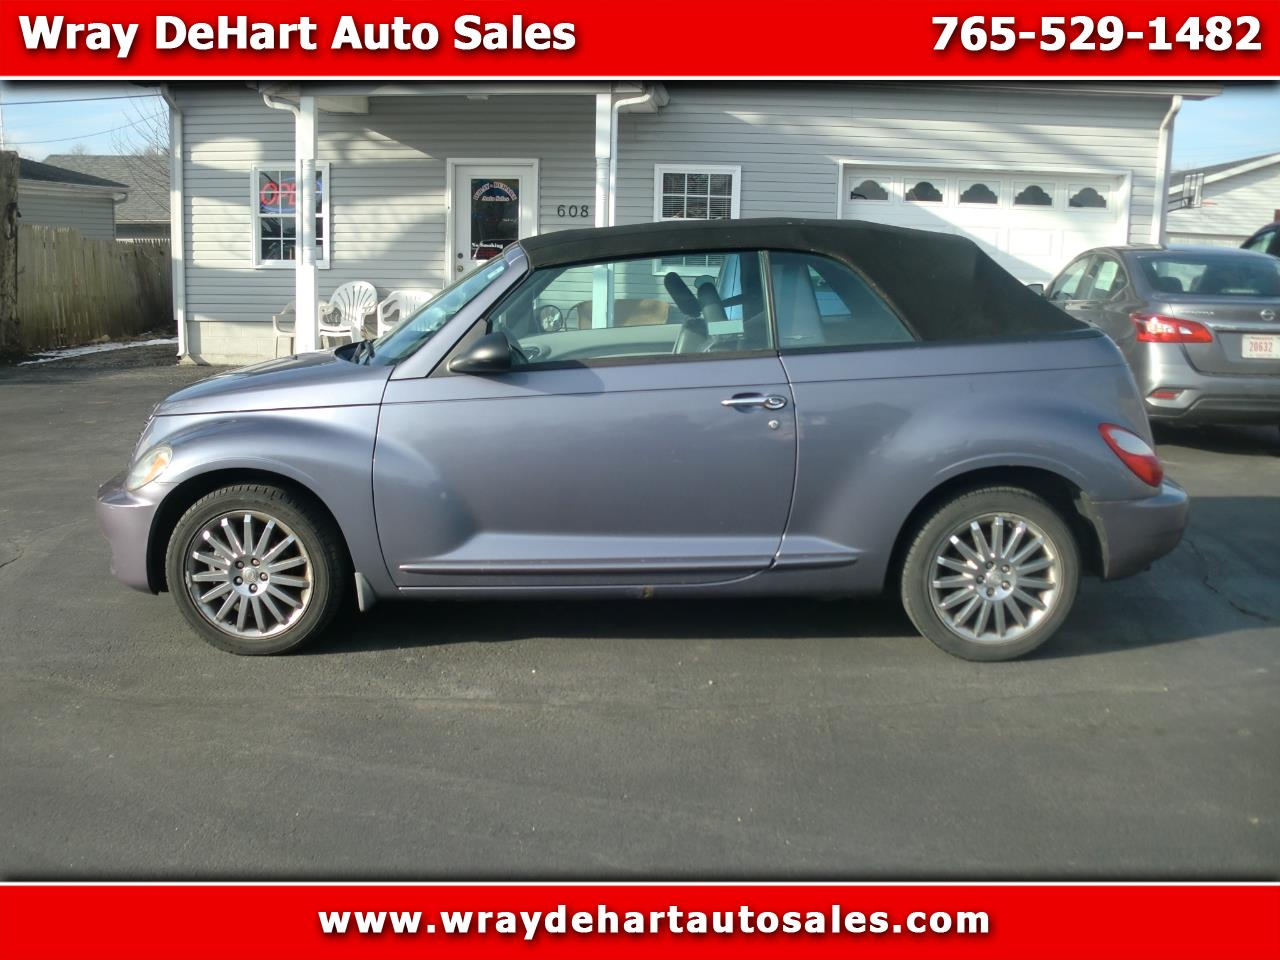 2007 Chrysler PT Cruiser GT Convertible